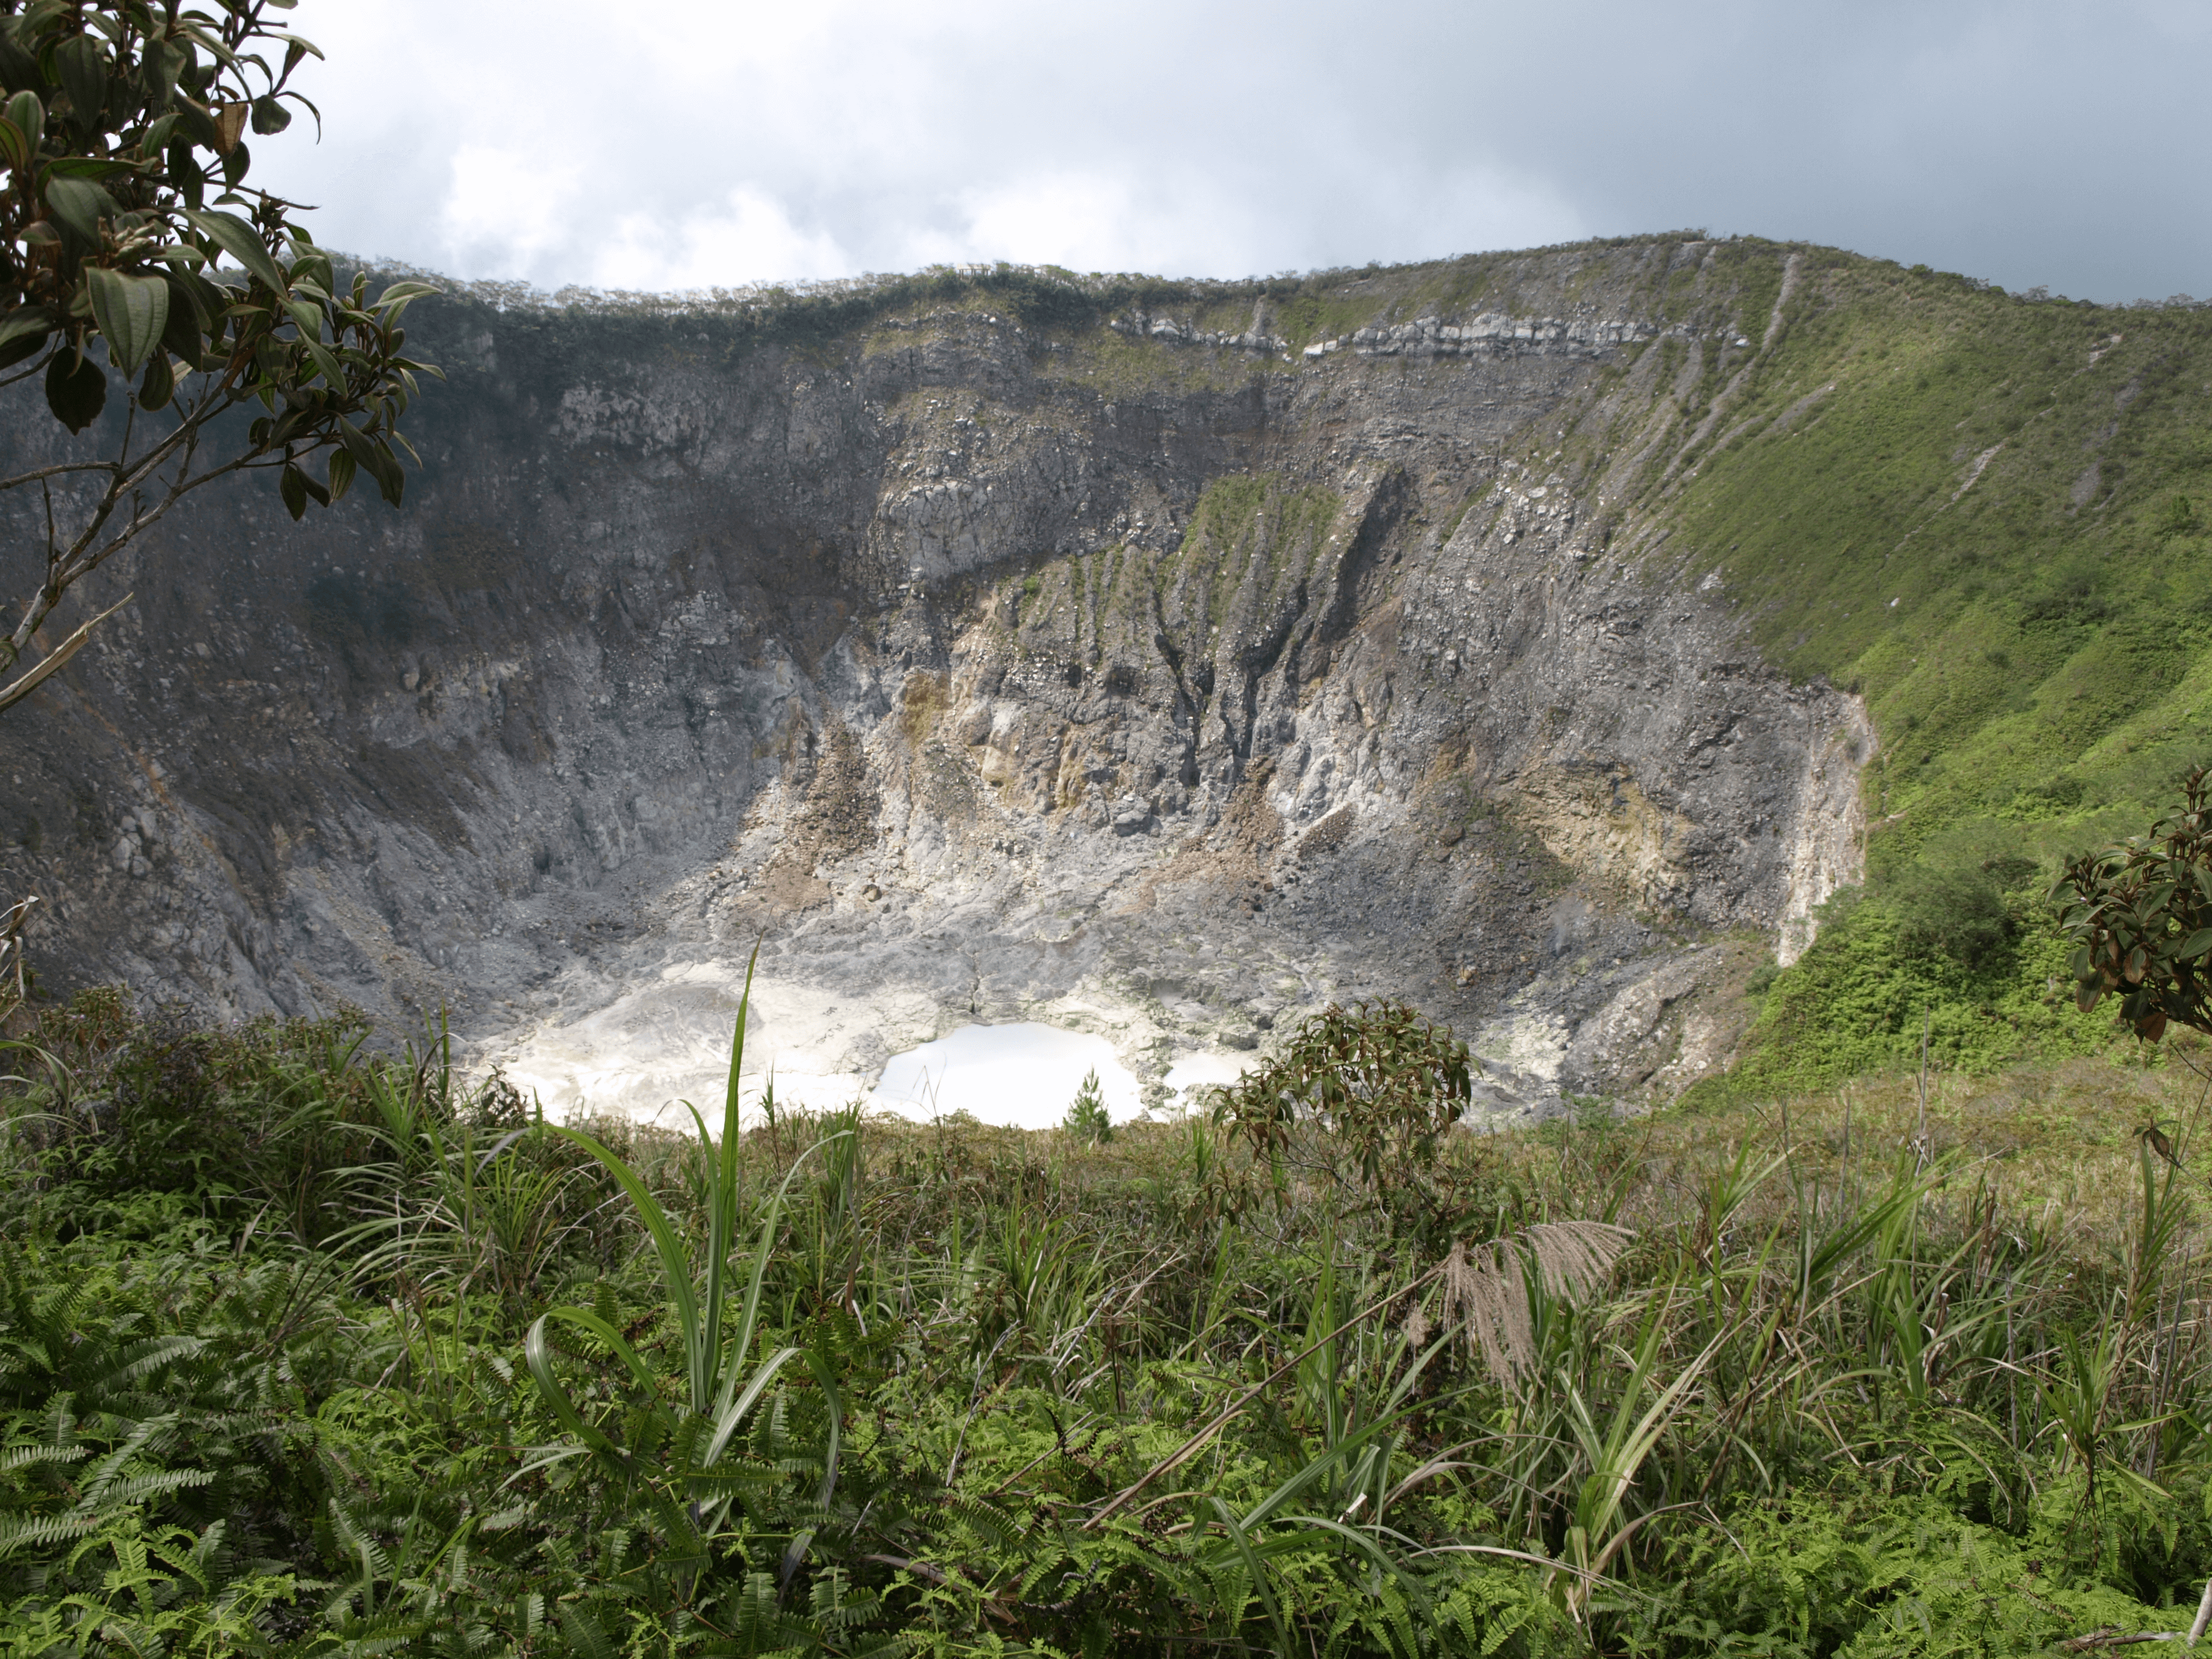 Cratere du volcan Mahawu nord Sulawesi